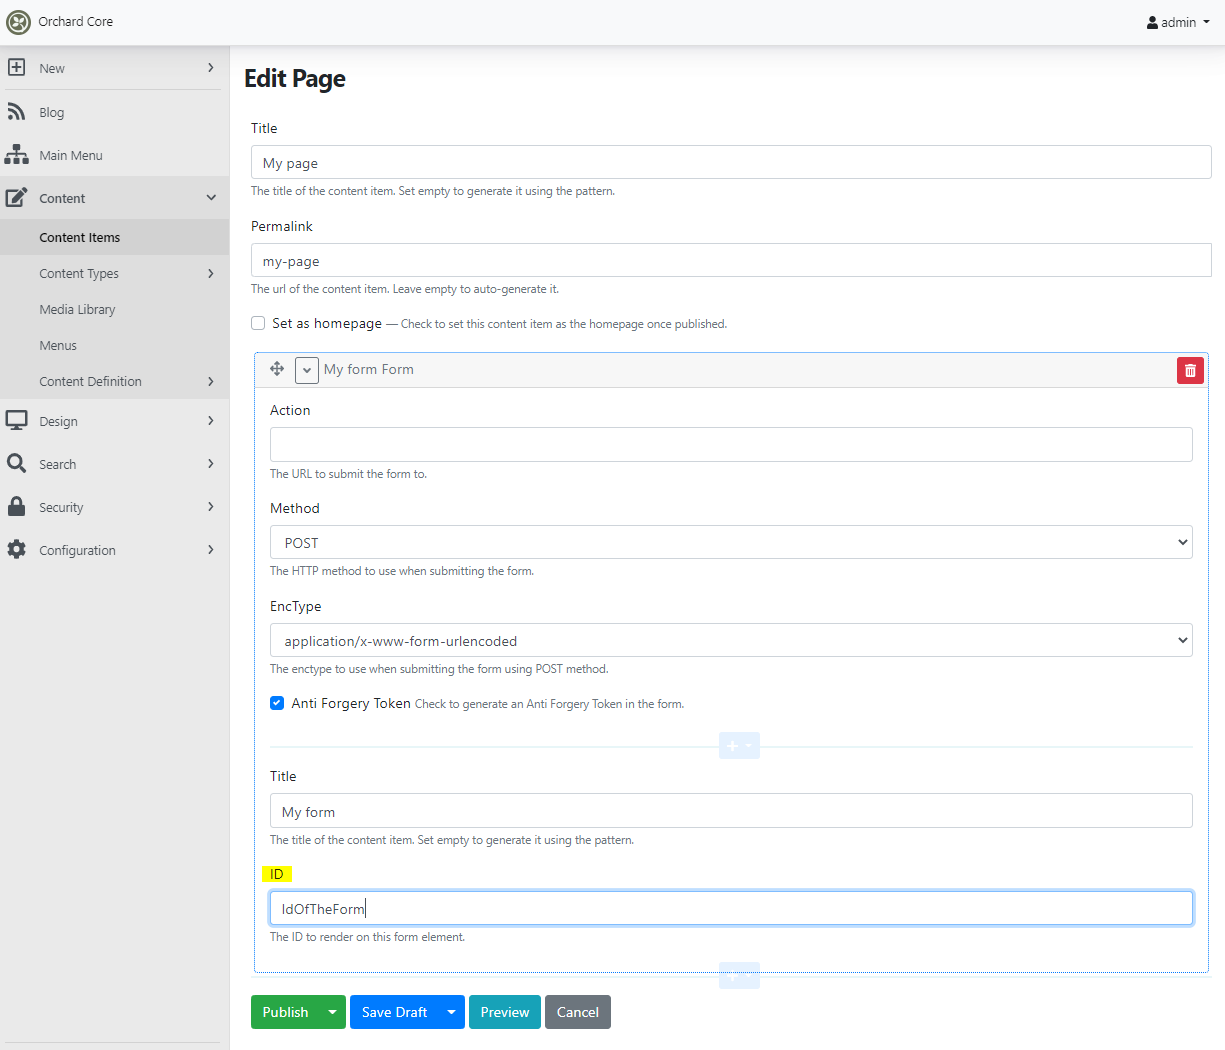 Setting the ID of the Form widget